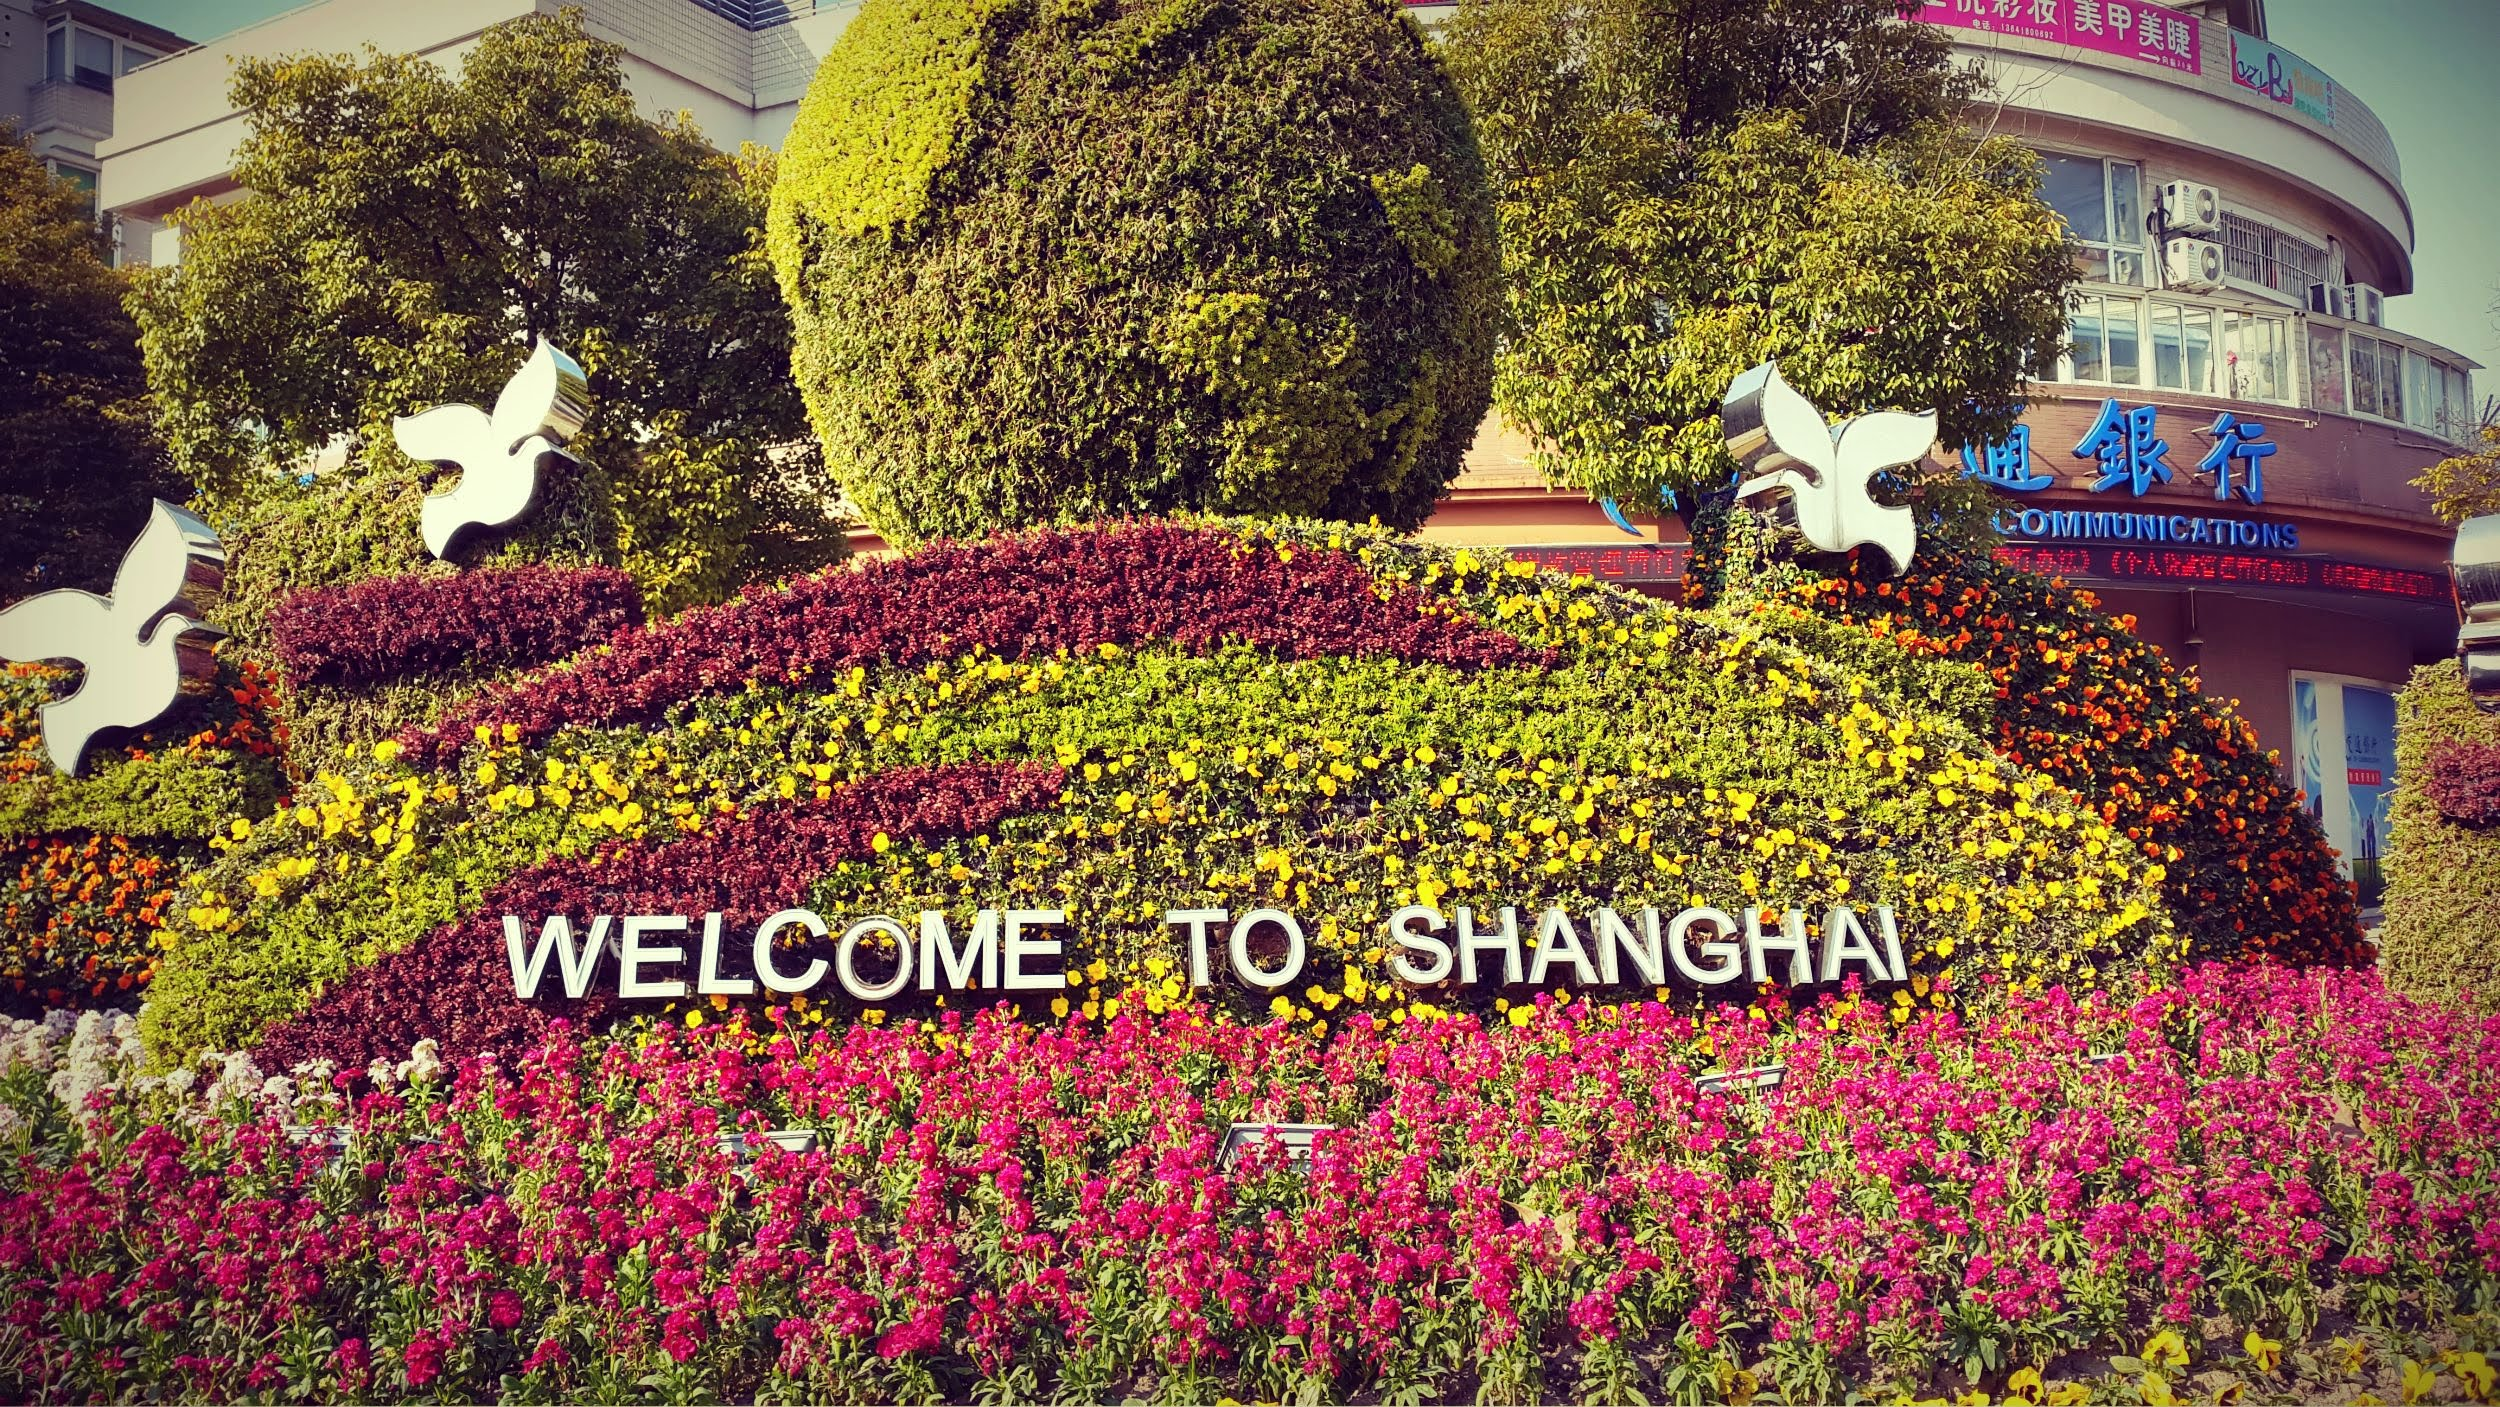 AIESEC OGCDP (Out Going exChange Development Program) to Shanghai, China